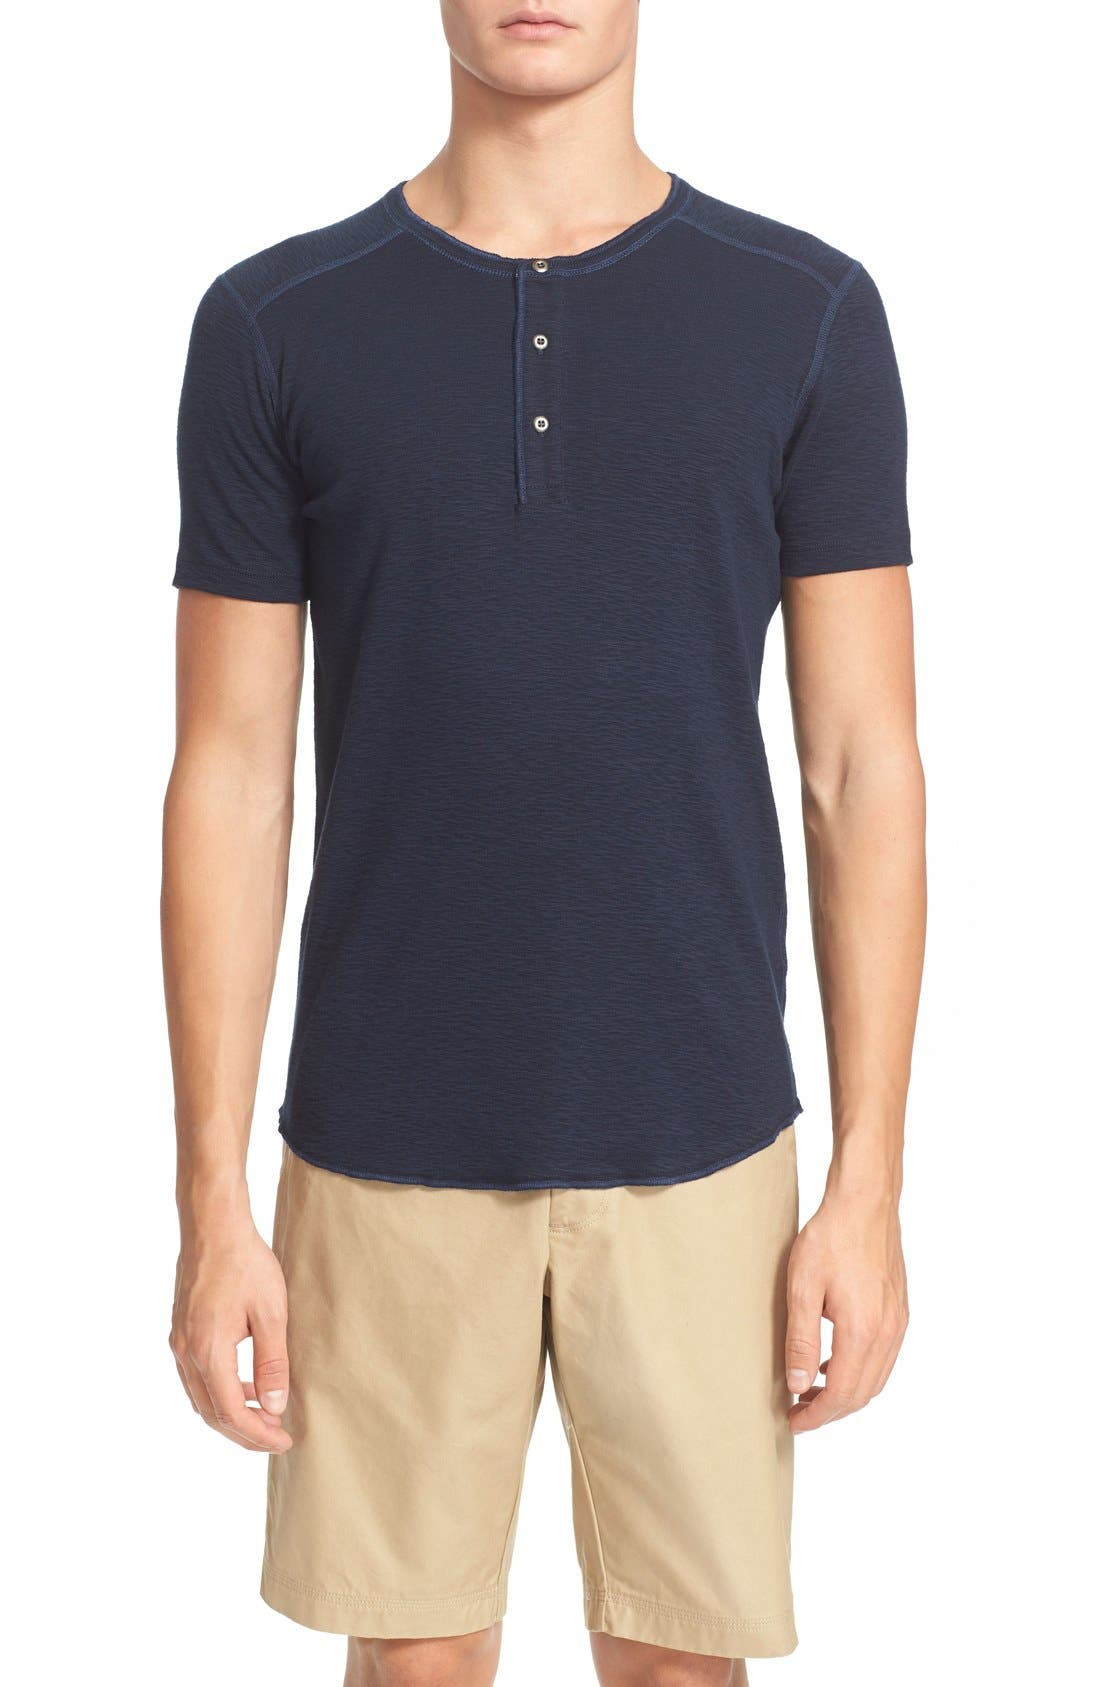 WINGS + HORNS 'Base' Short Sleeve Henley in Navy